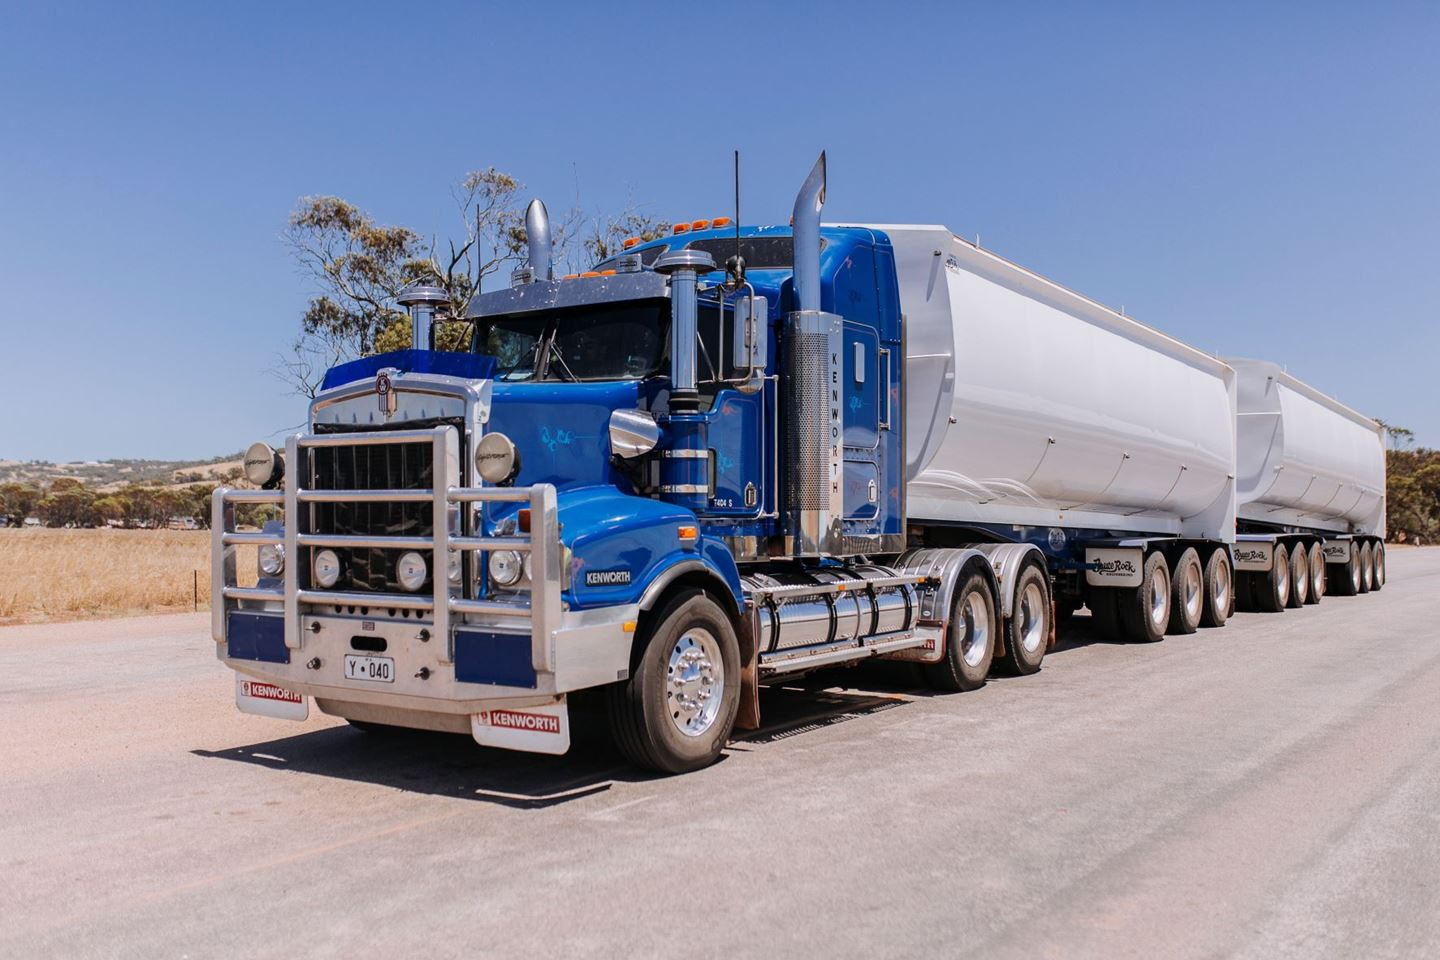 A large blue truck parked on a gravel road